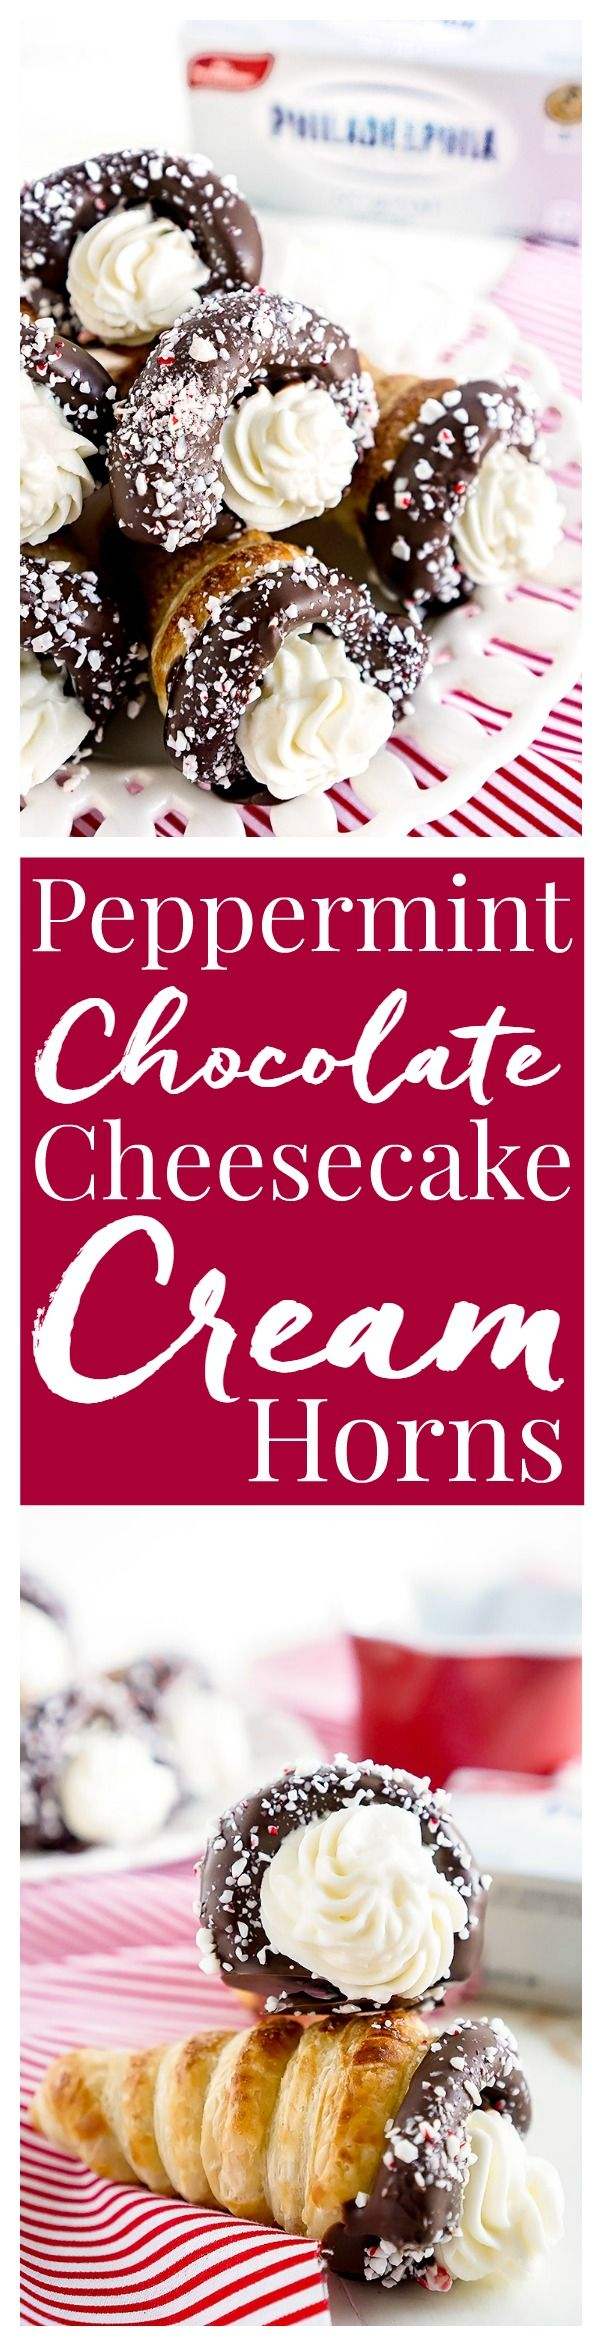 These Chocolate Peppermint Cheesecake Cream Horns are a simple dessert with a flaky pastry, chocolate, peppermint, and a peppermint cream cheese filling. #OneAndOnlyPhilly #HolidaysAreMadeWith #ad @spreadphilly